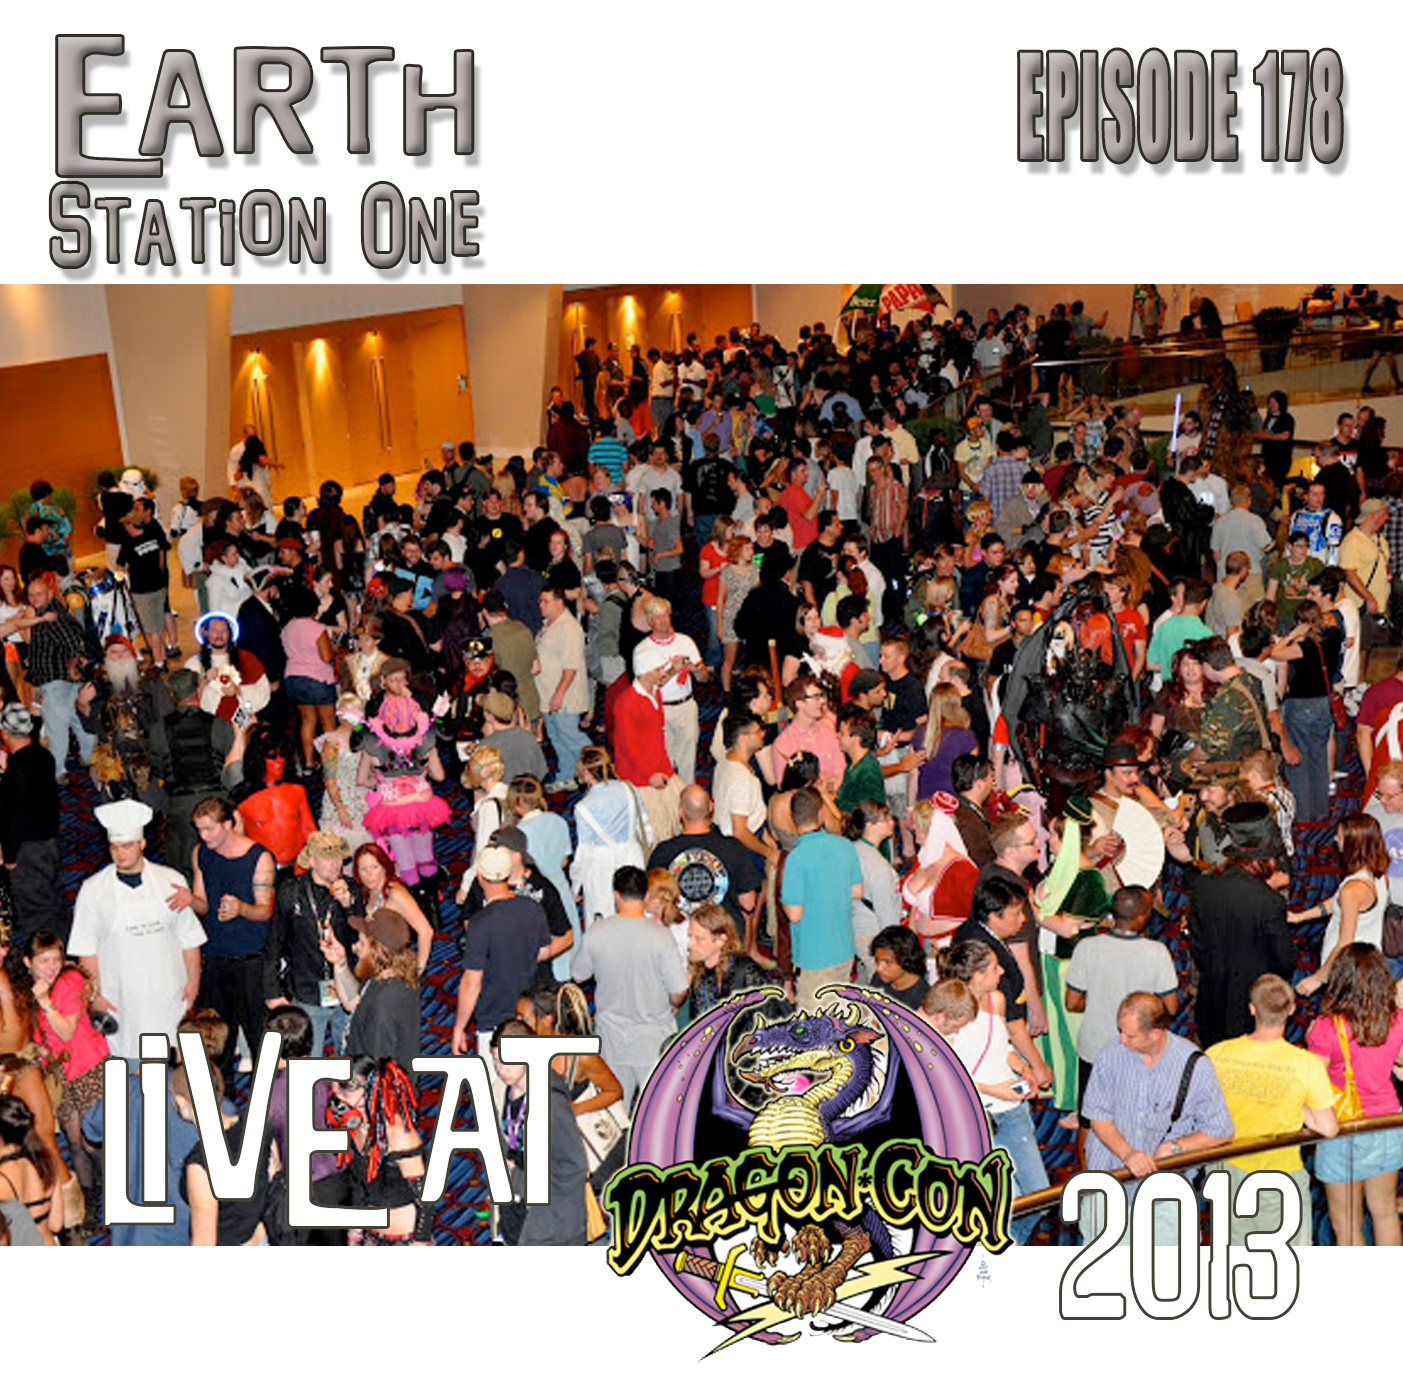 Earth Station One Episode 178